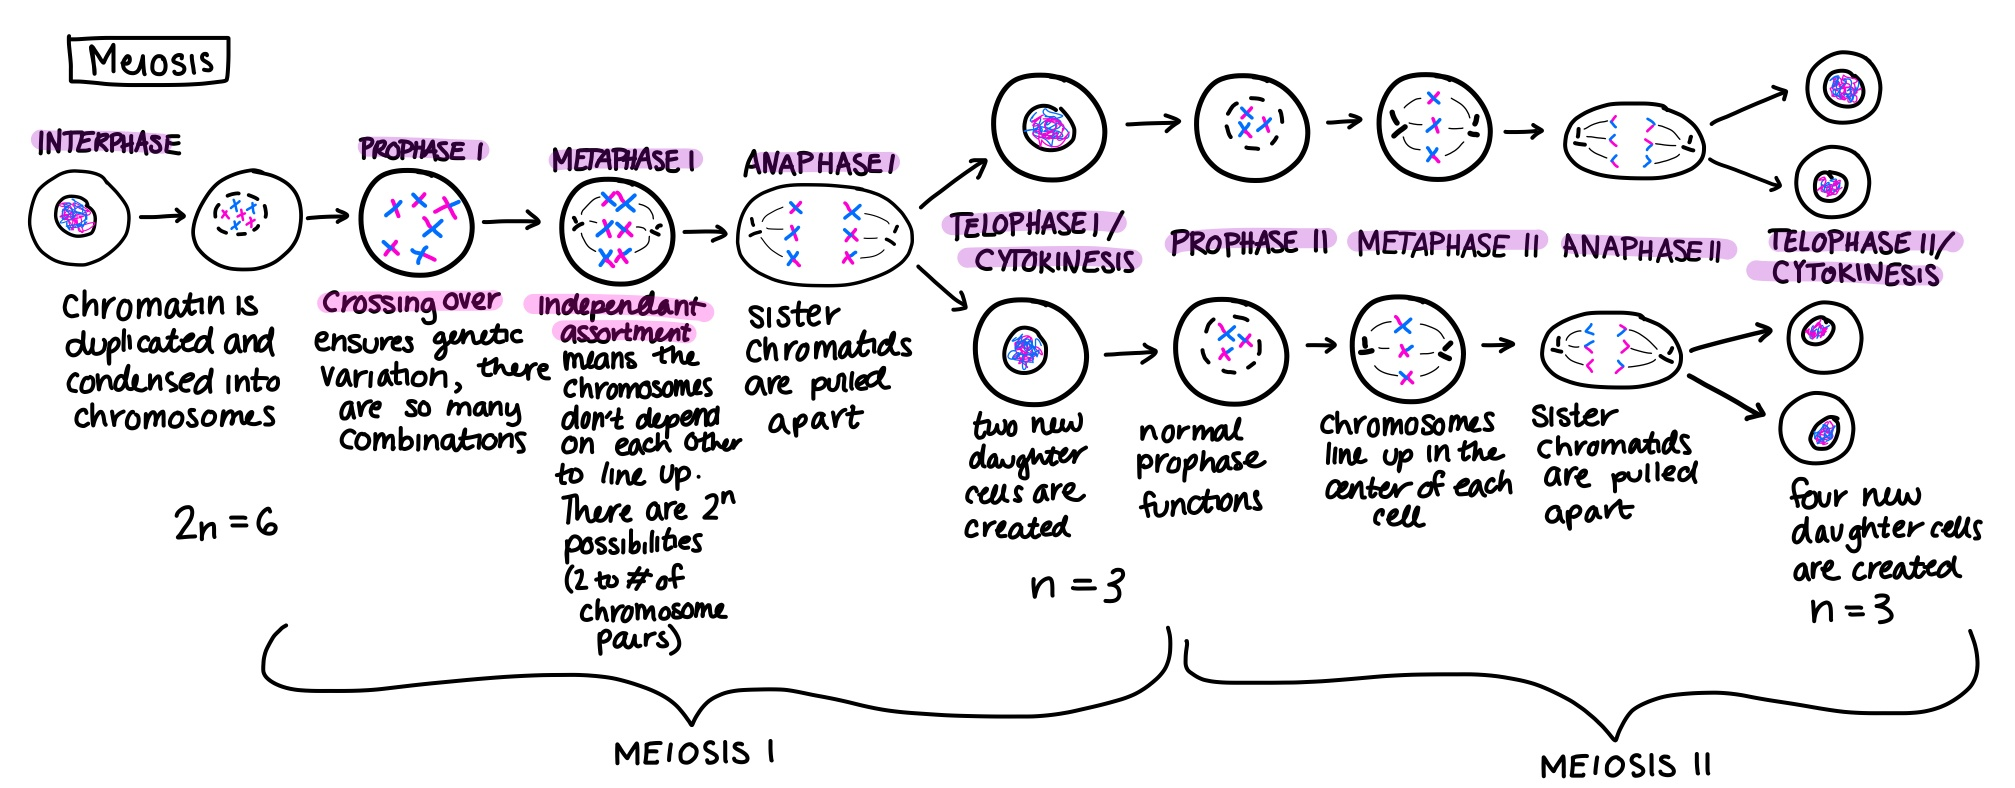 Meiosis Ii Overview Amp Stages